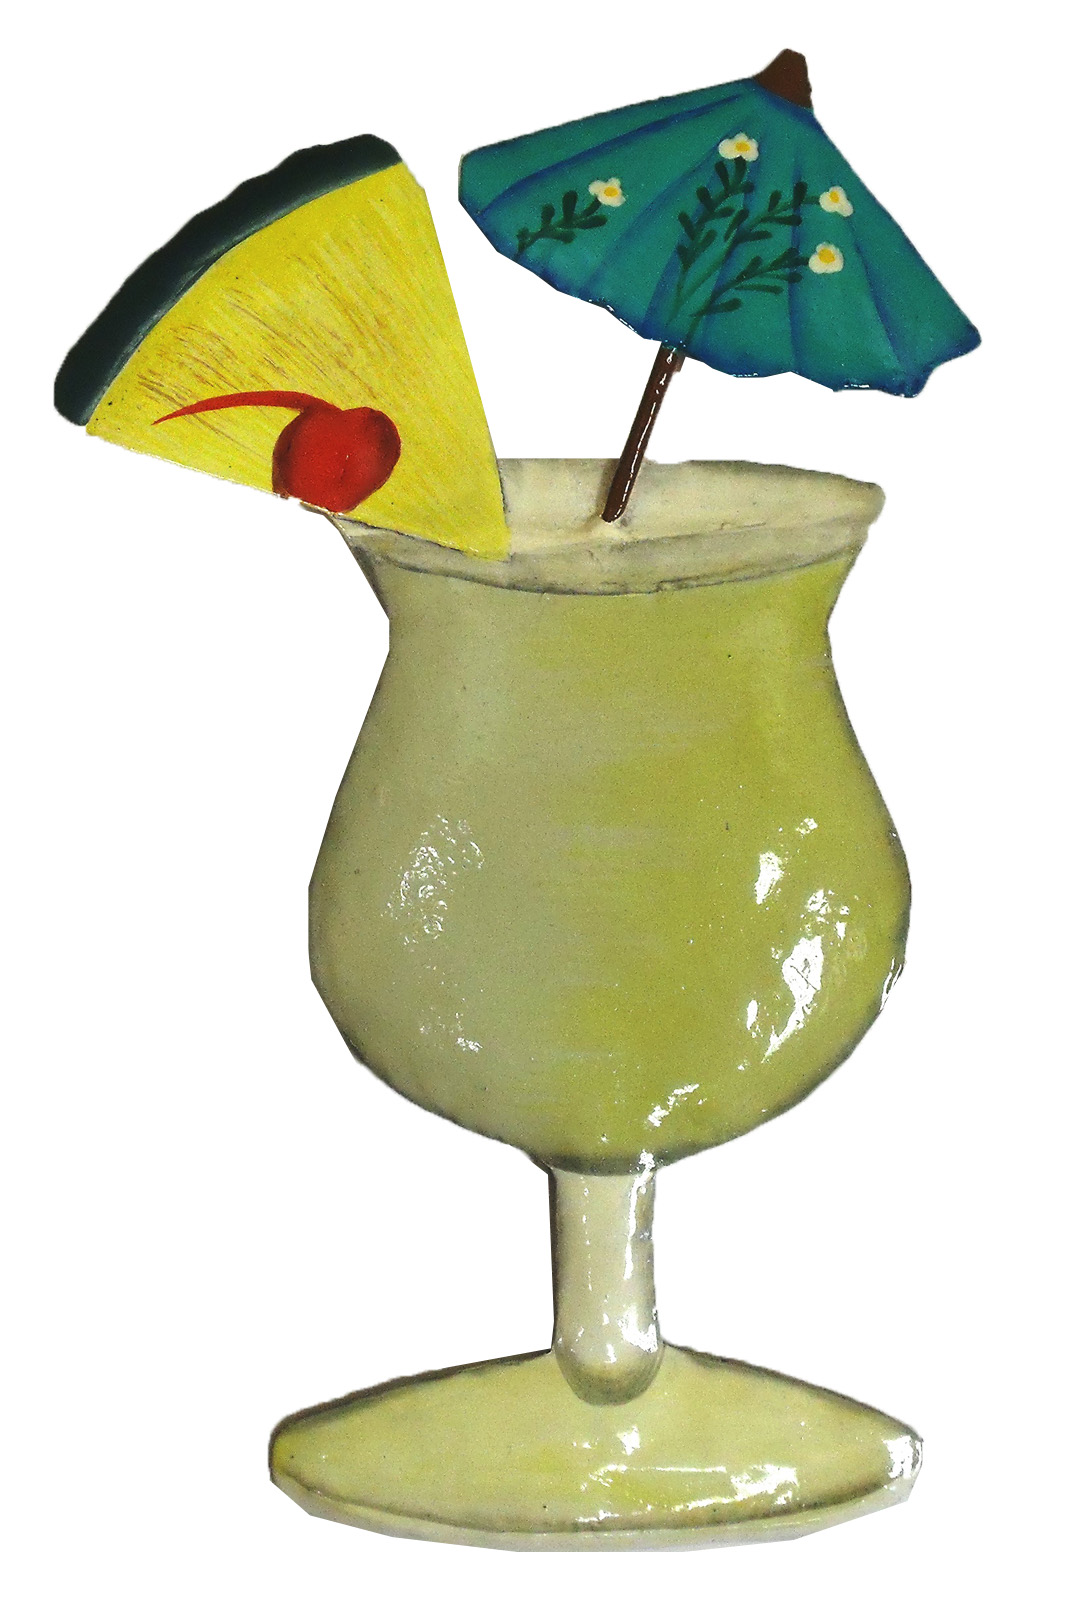 Pina Colada Tropical Drink Haitian Metal Art Wall Decor | eBay